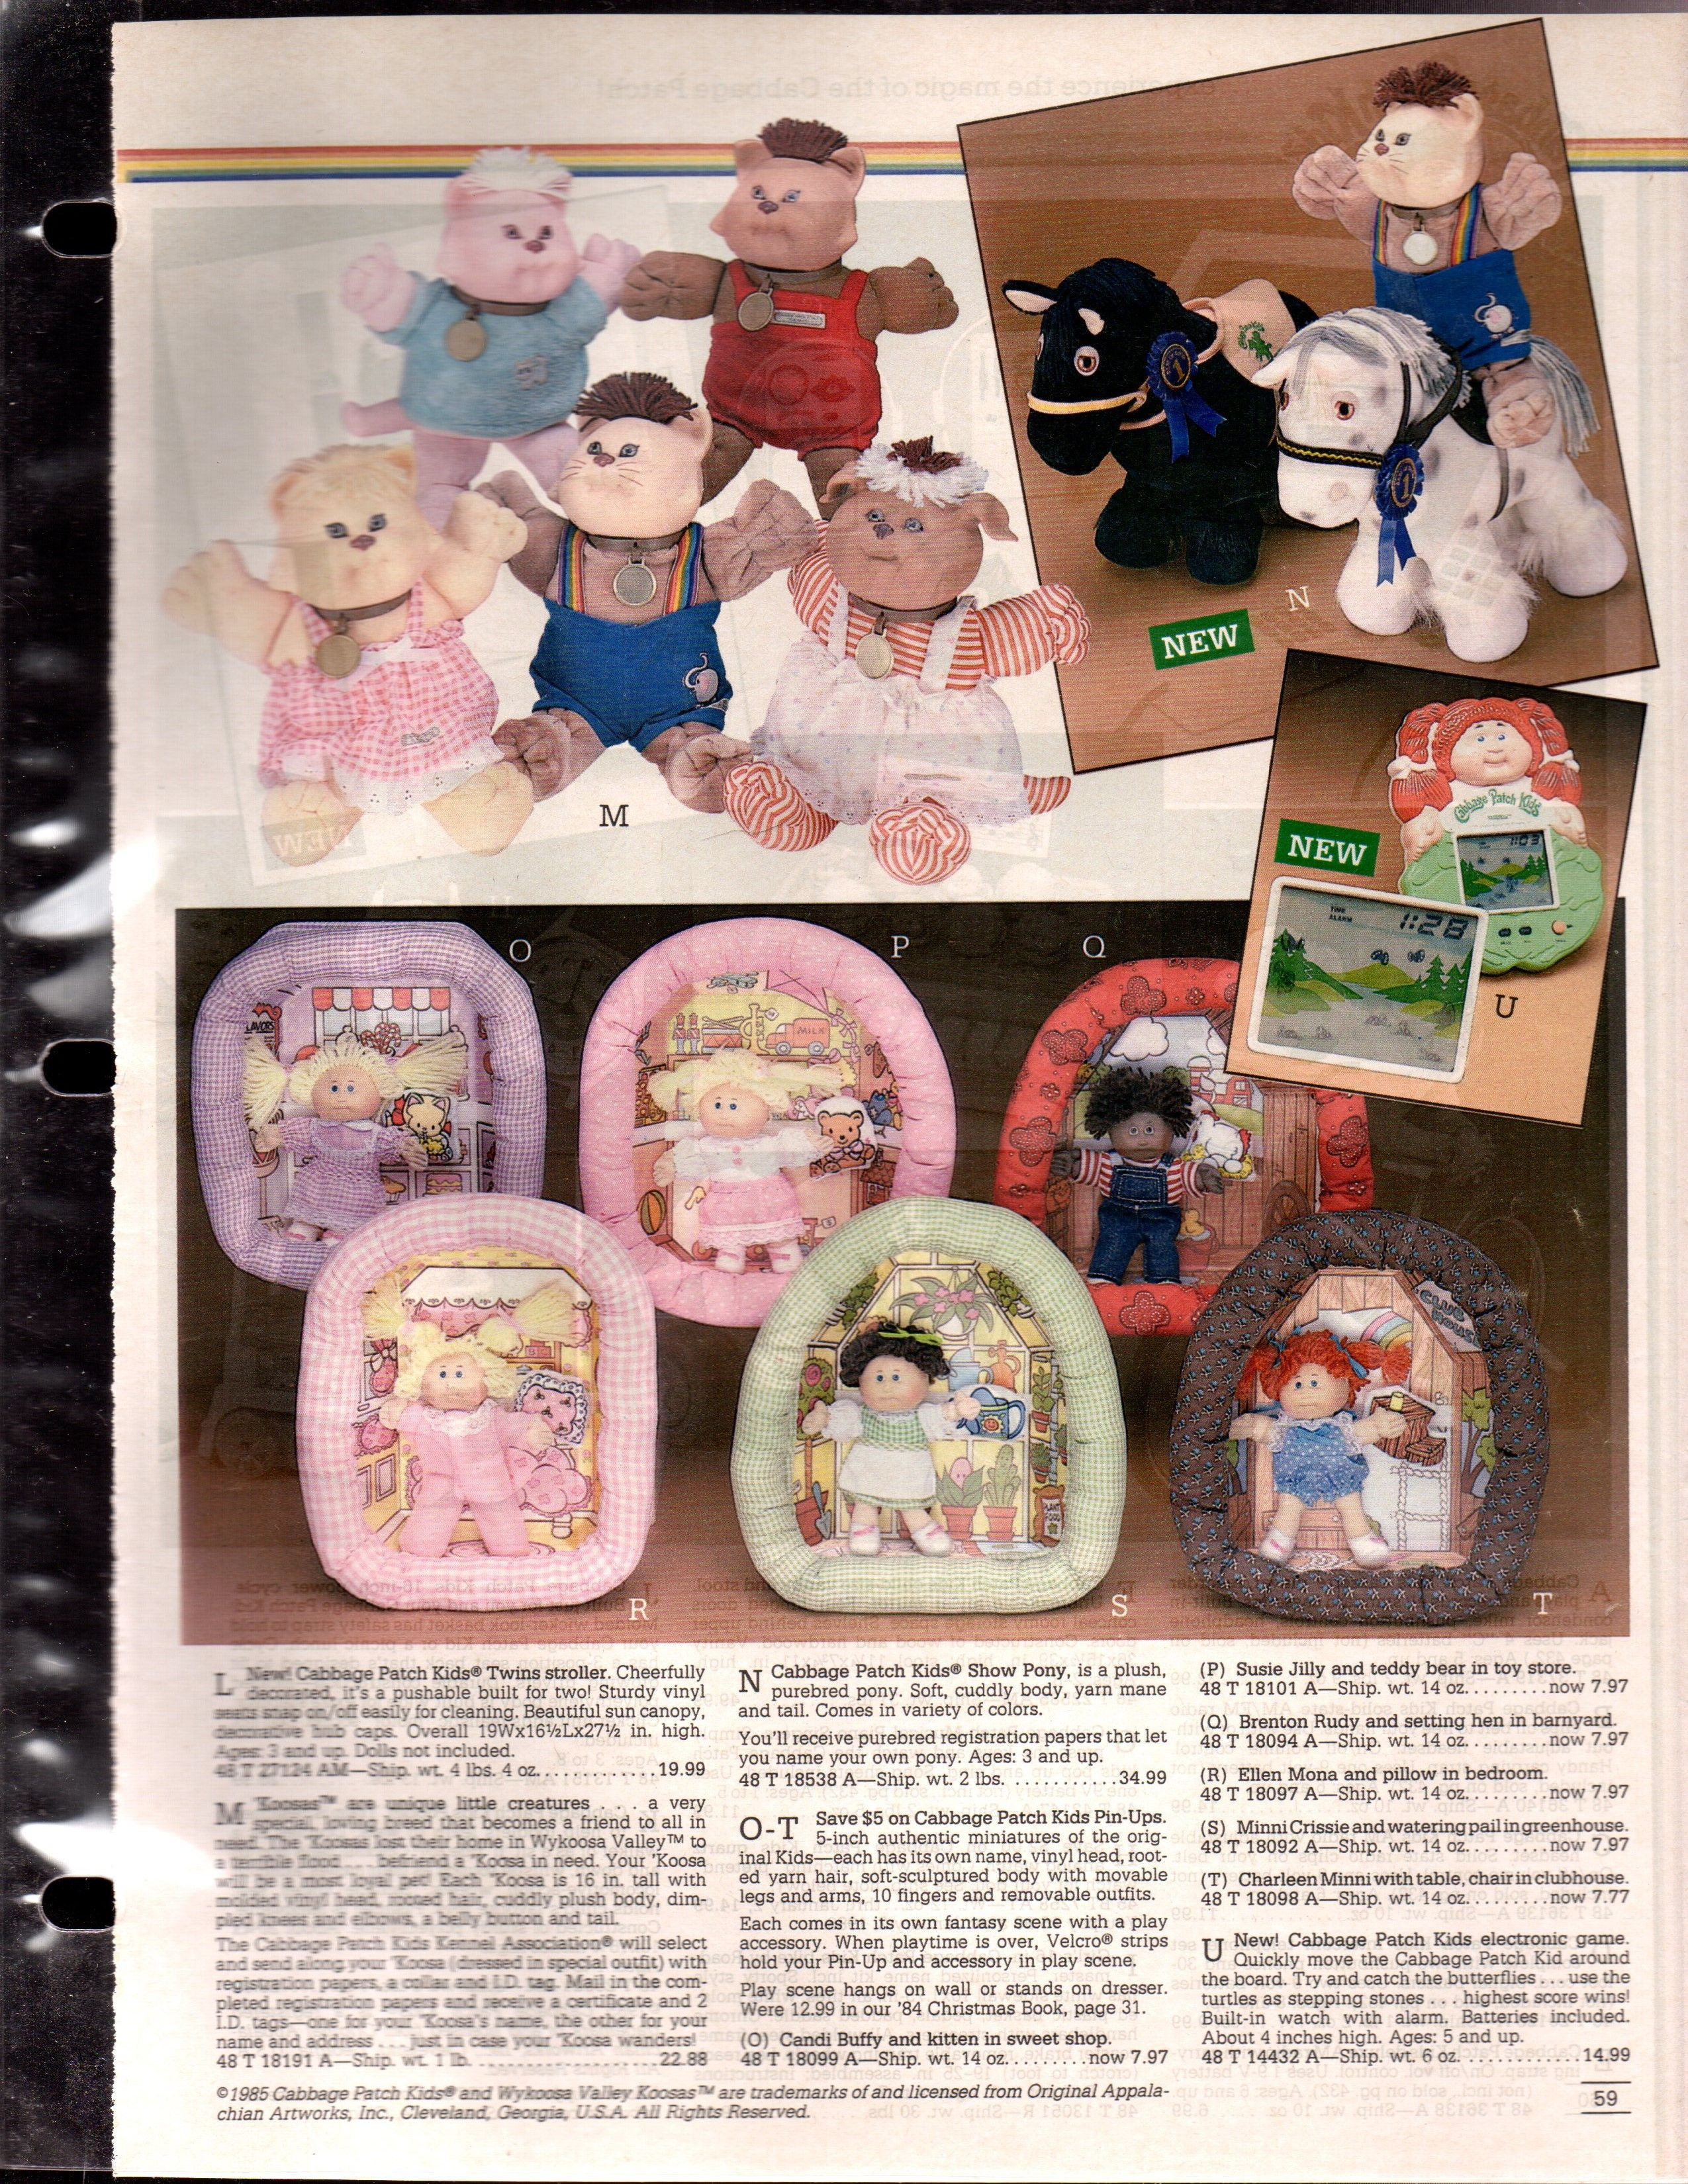 Pin On Cabbage Patch Kids Every Thing From Accesseries To Friends